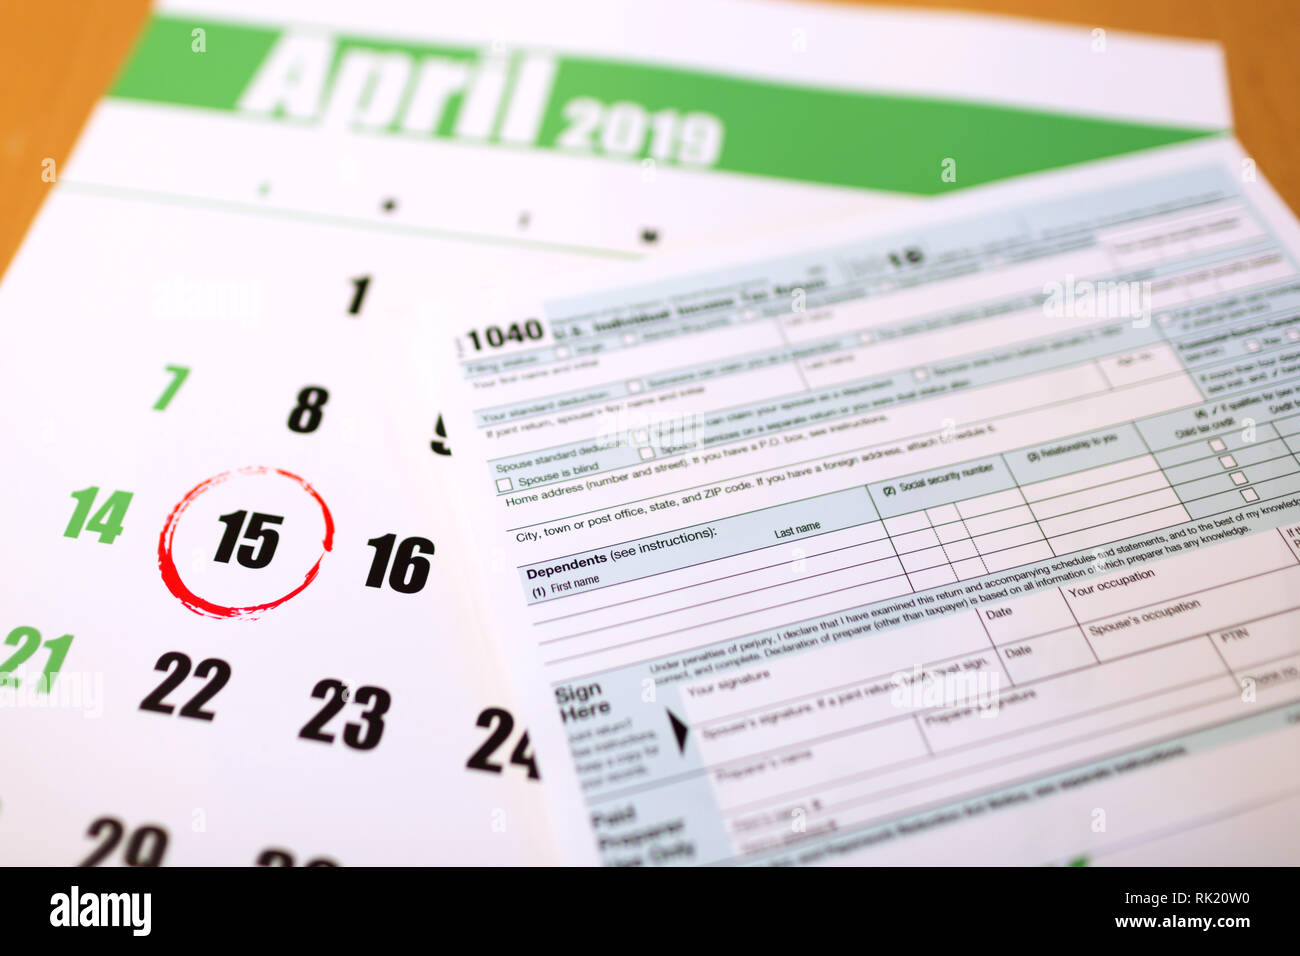 2019 calendar with 1040 income tax form for 2018 showing tax